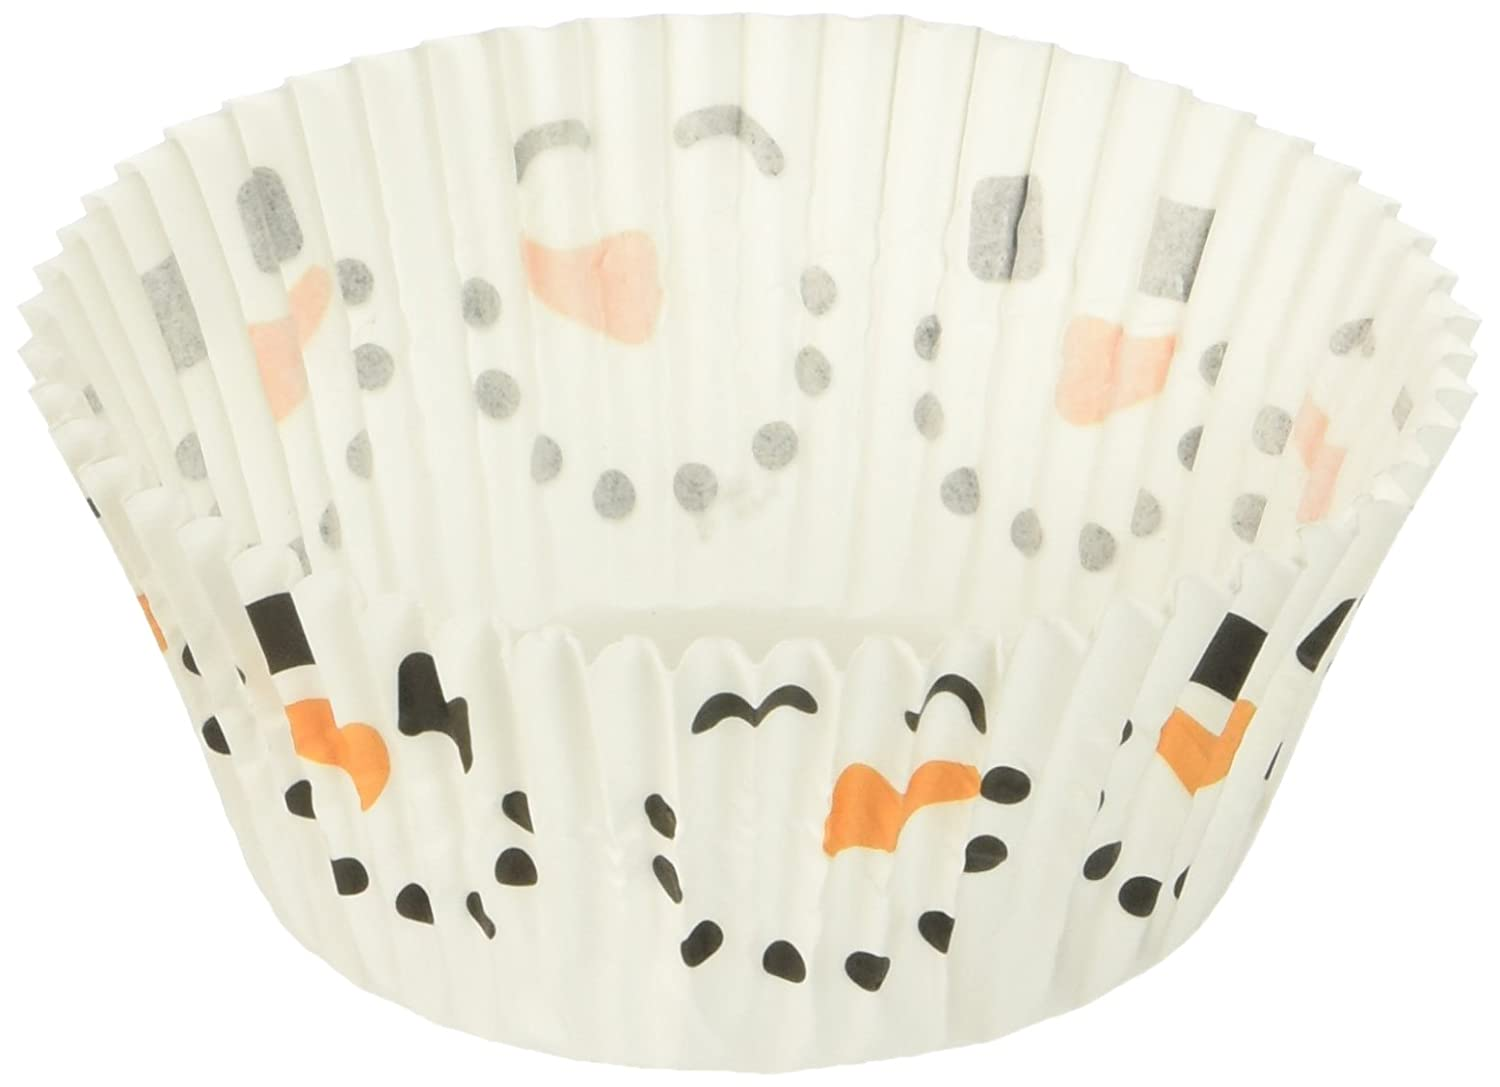 Wilton 415-1926 50-Pack Snowman Baking Cup, Standard, Multicolored